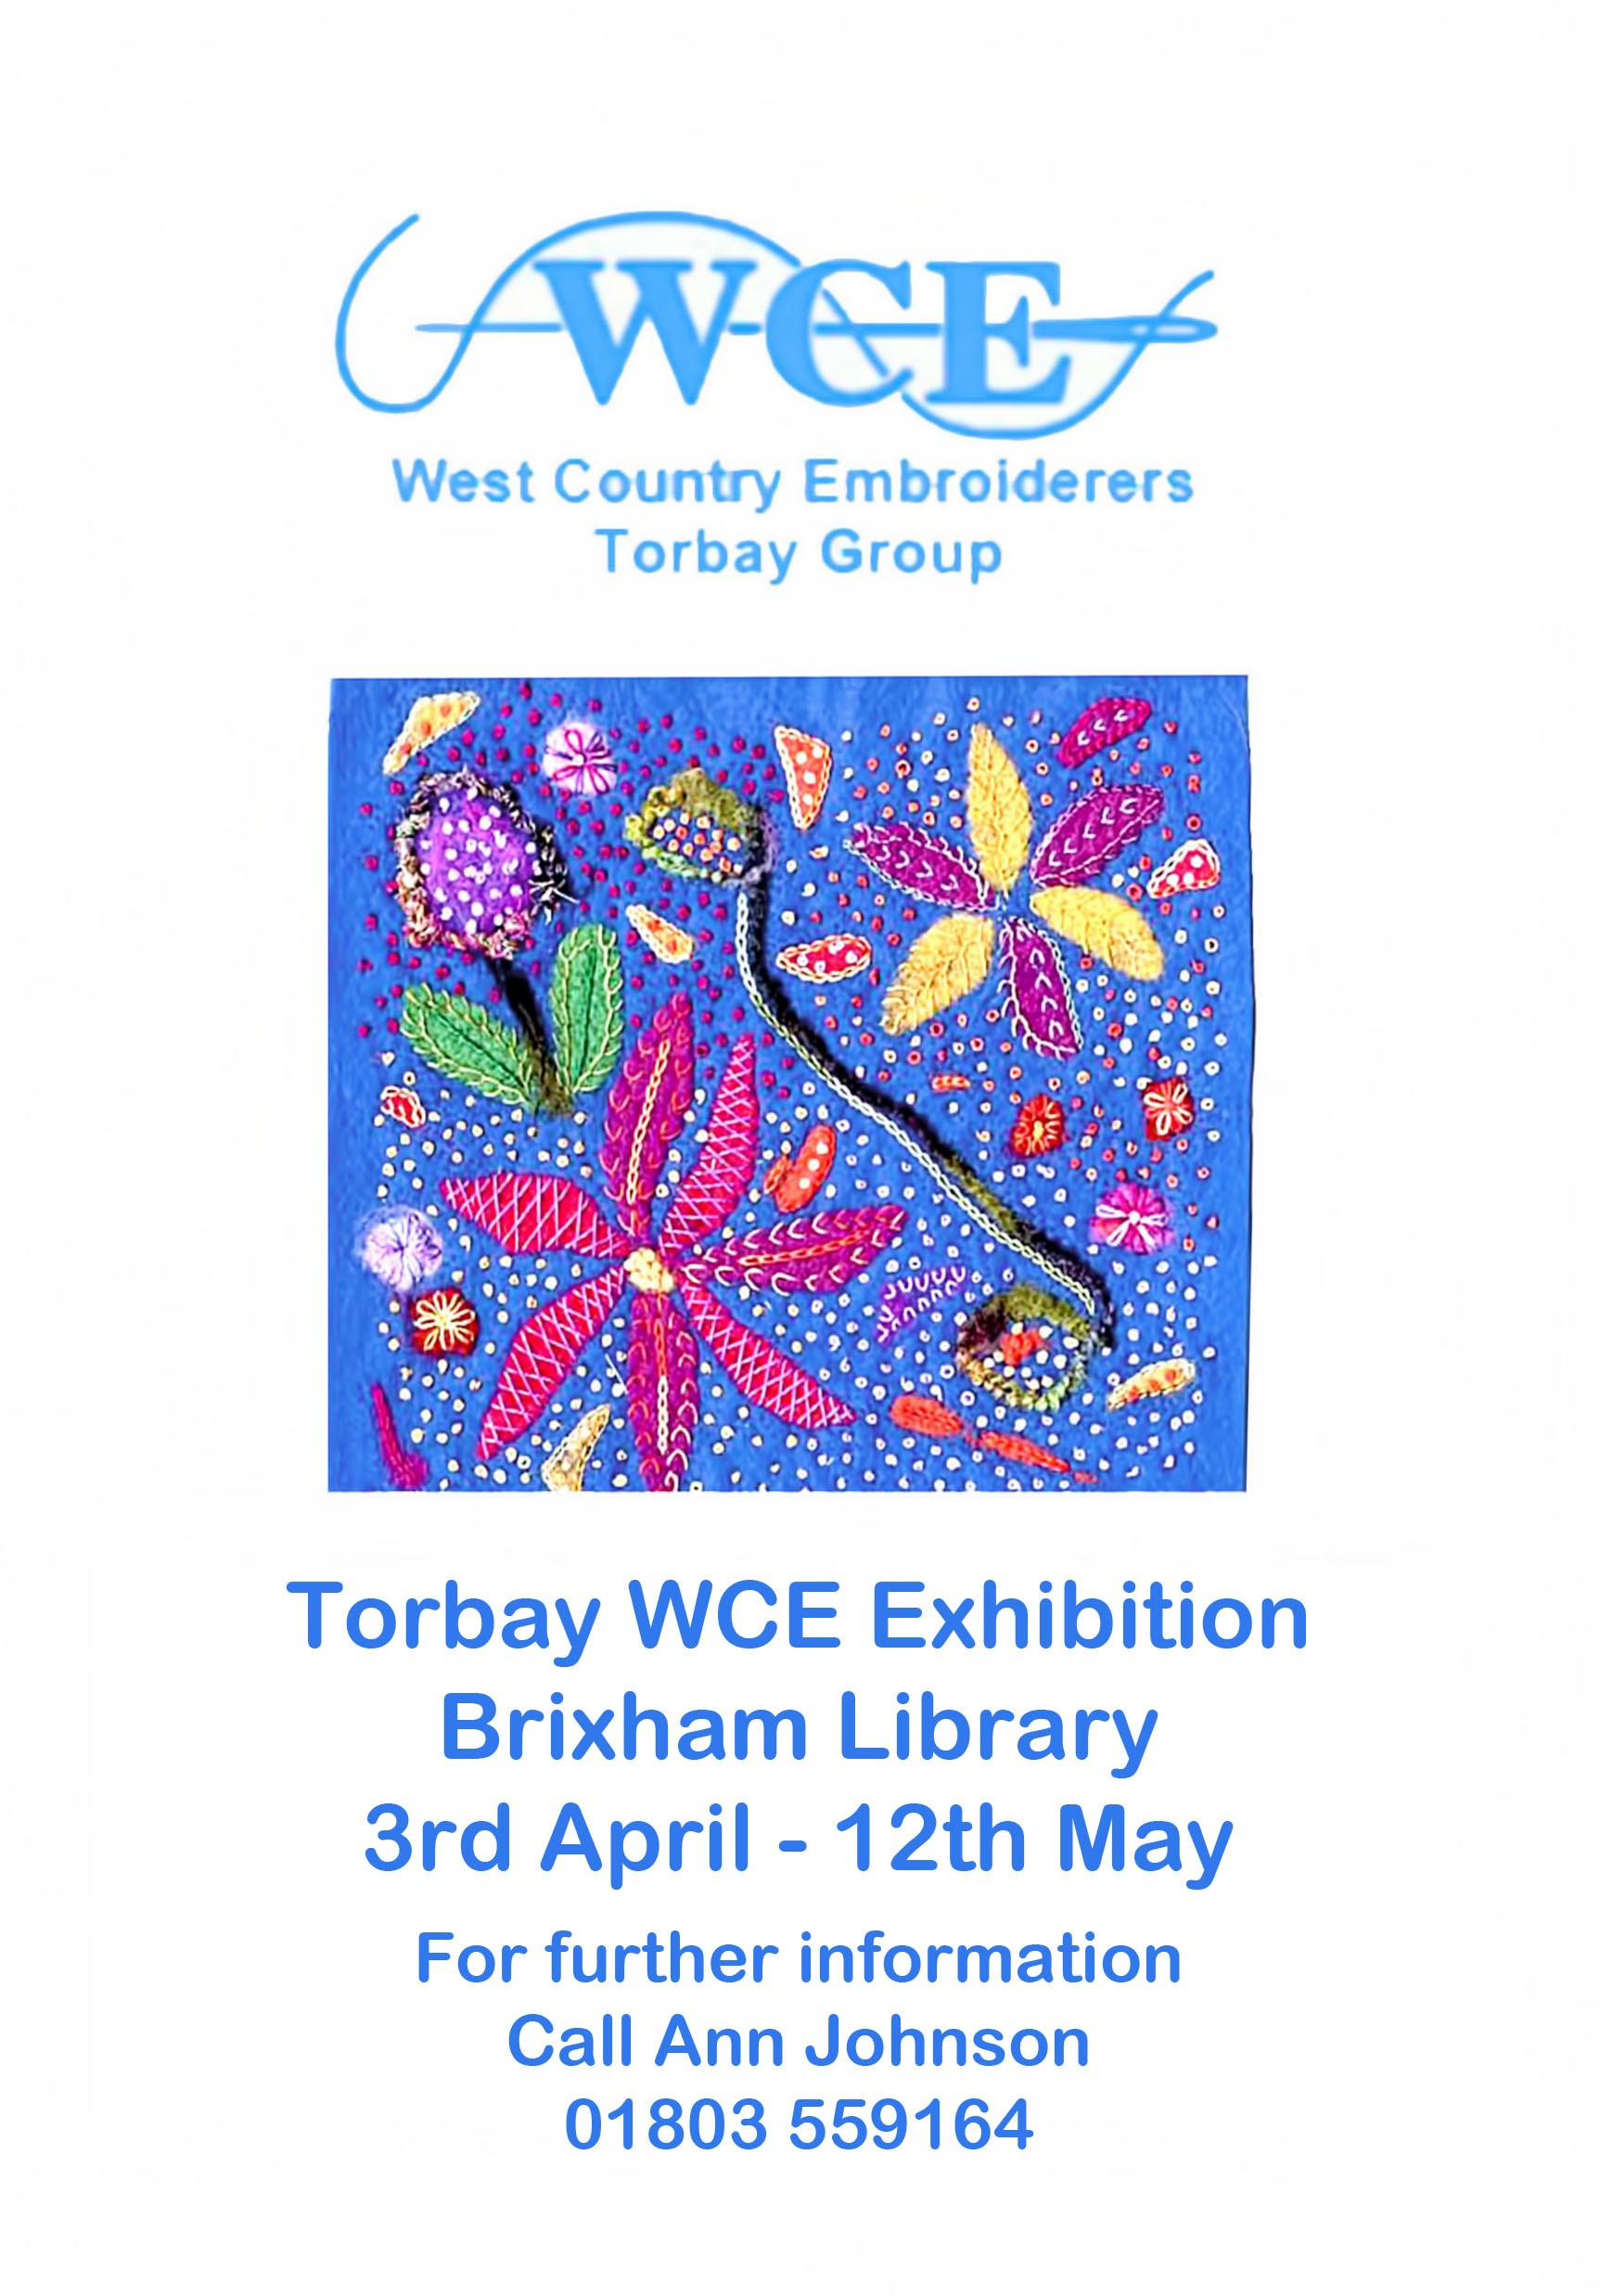 Torbay WCE Exhibition, Brixham. 3-12th May 2017